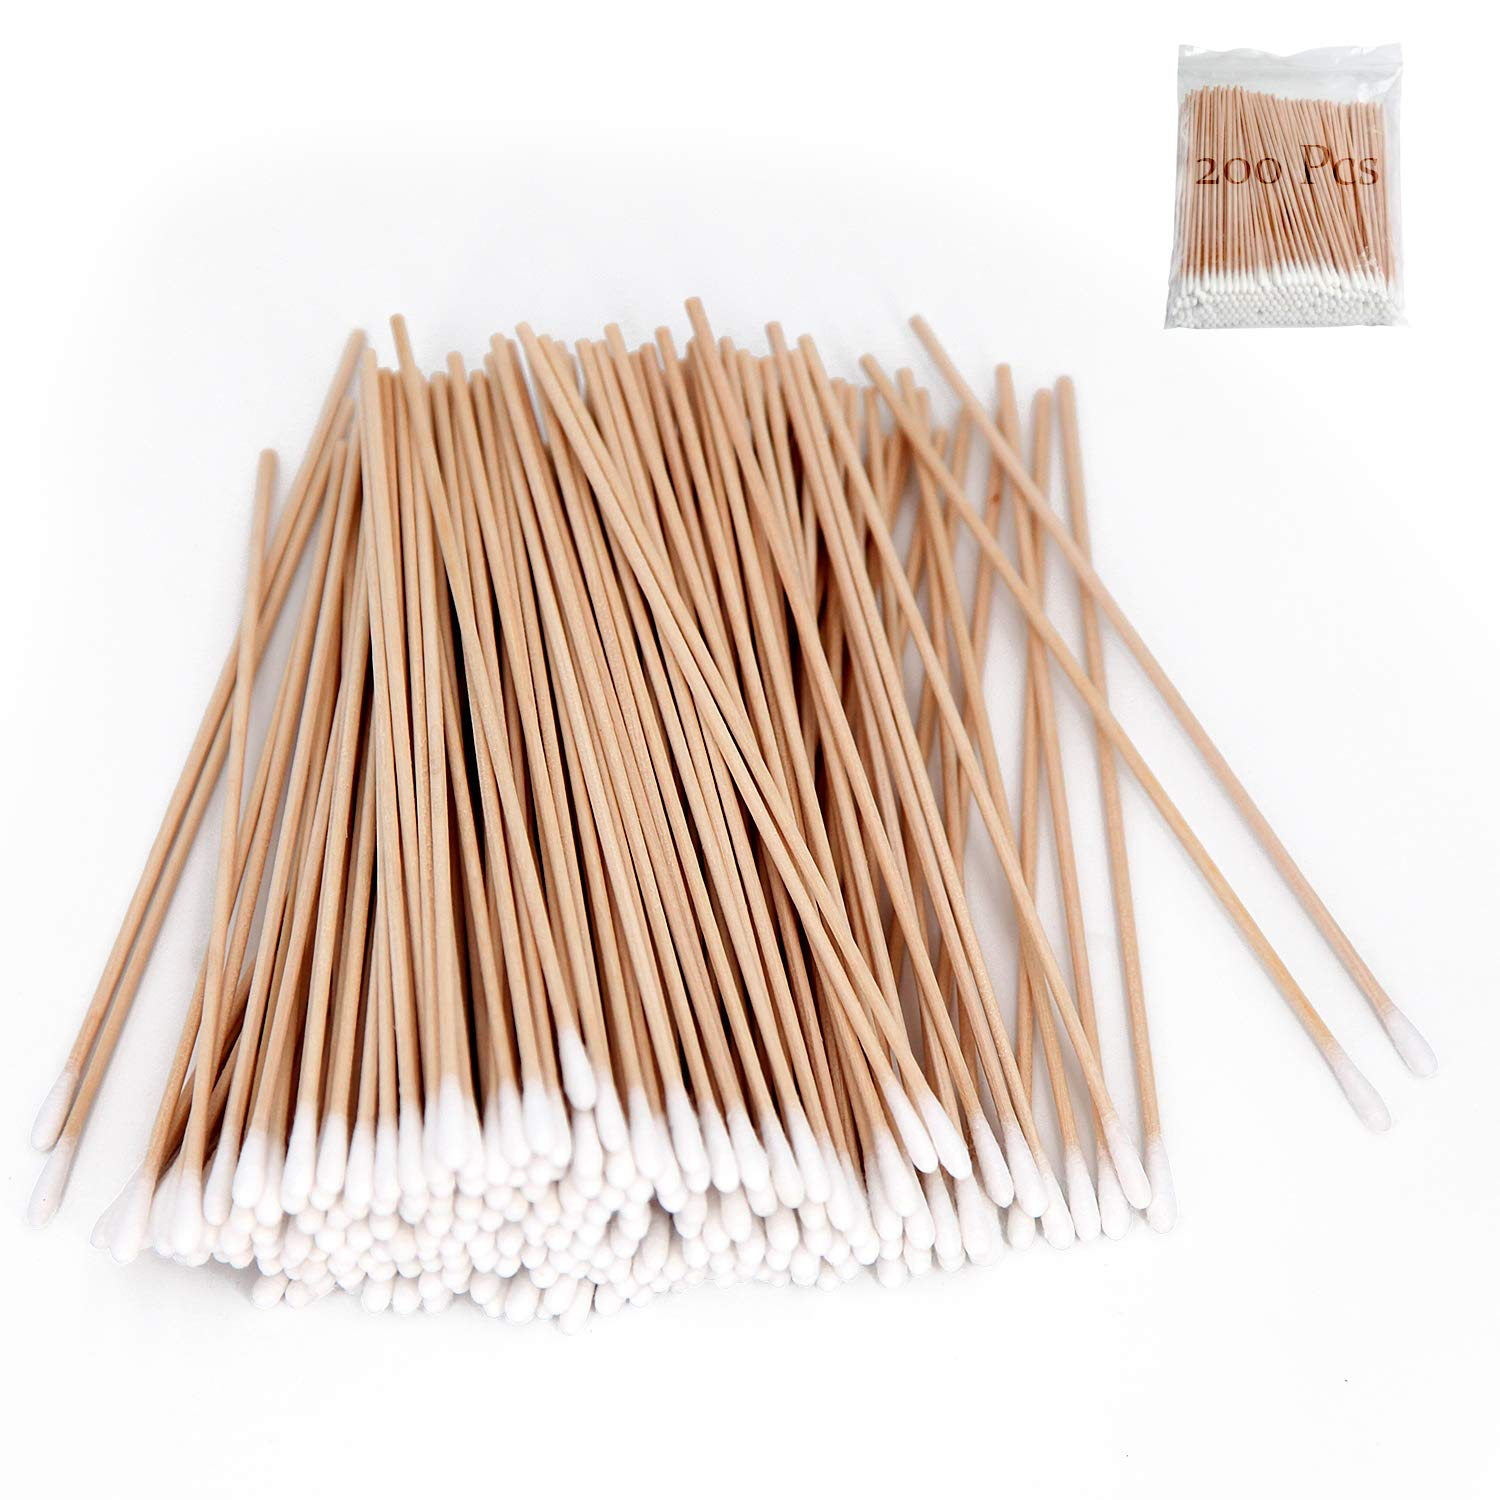 200 PCS Long Wooden Cotton Swabs, Cleaning Cotton Sticks With Wood Handle for Oil Makeup Gun Applicators, Eye Ears Eyeshadow Brush and Remover Tool, Cutips Buds for Baby And Home Accessories